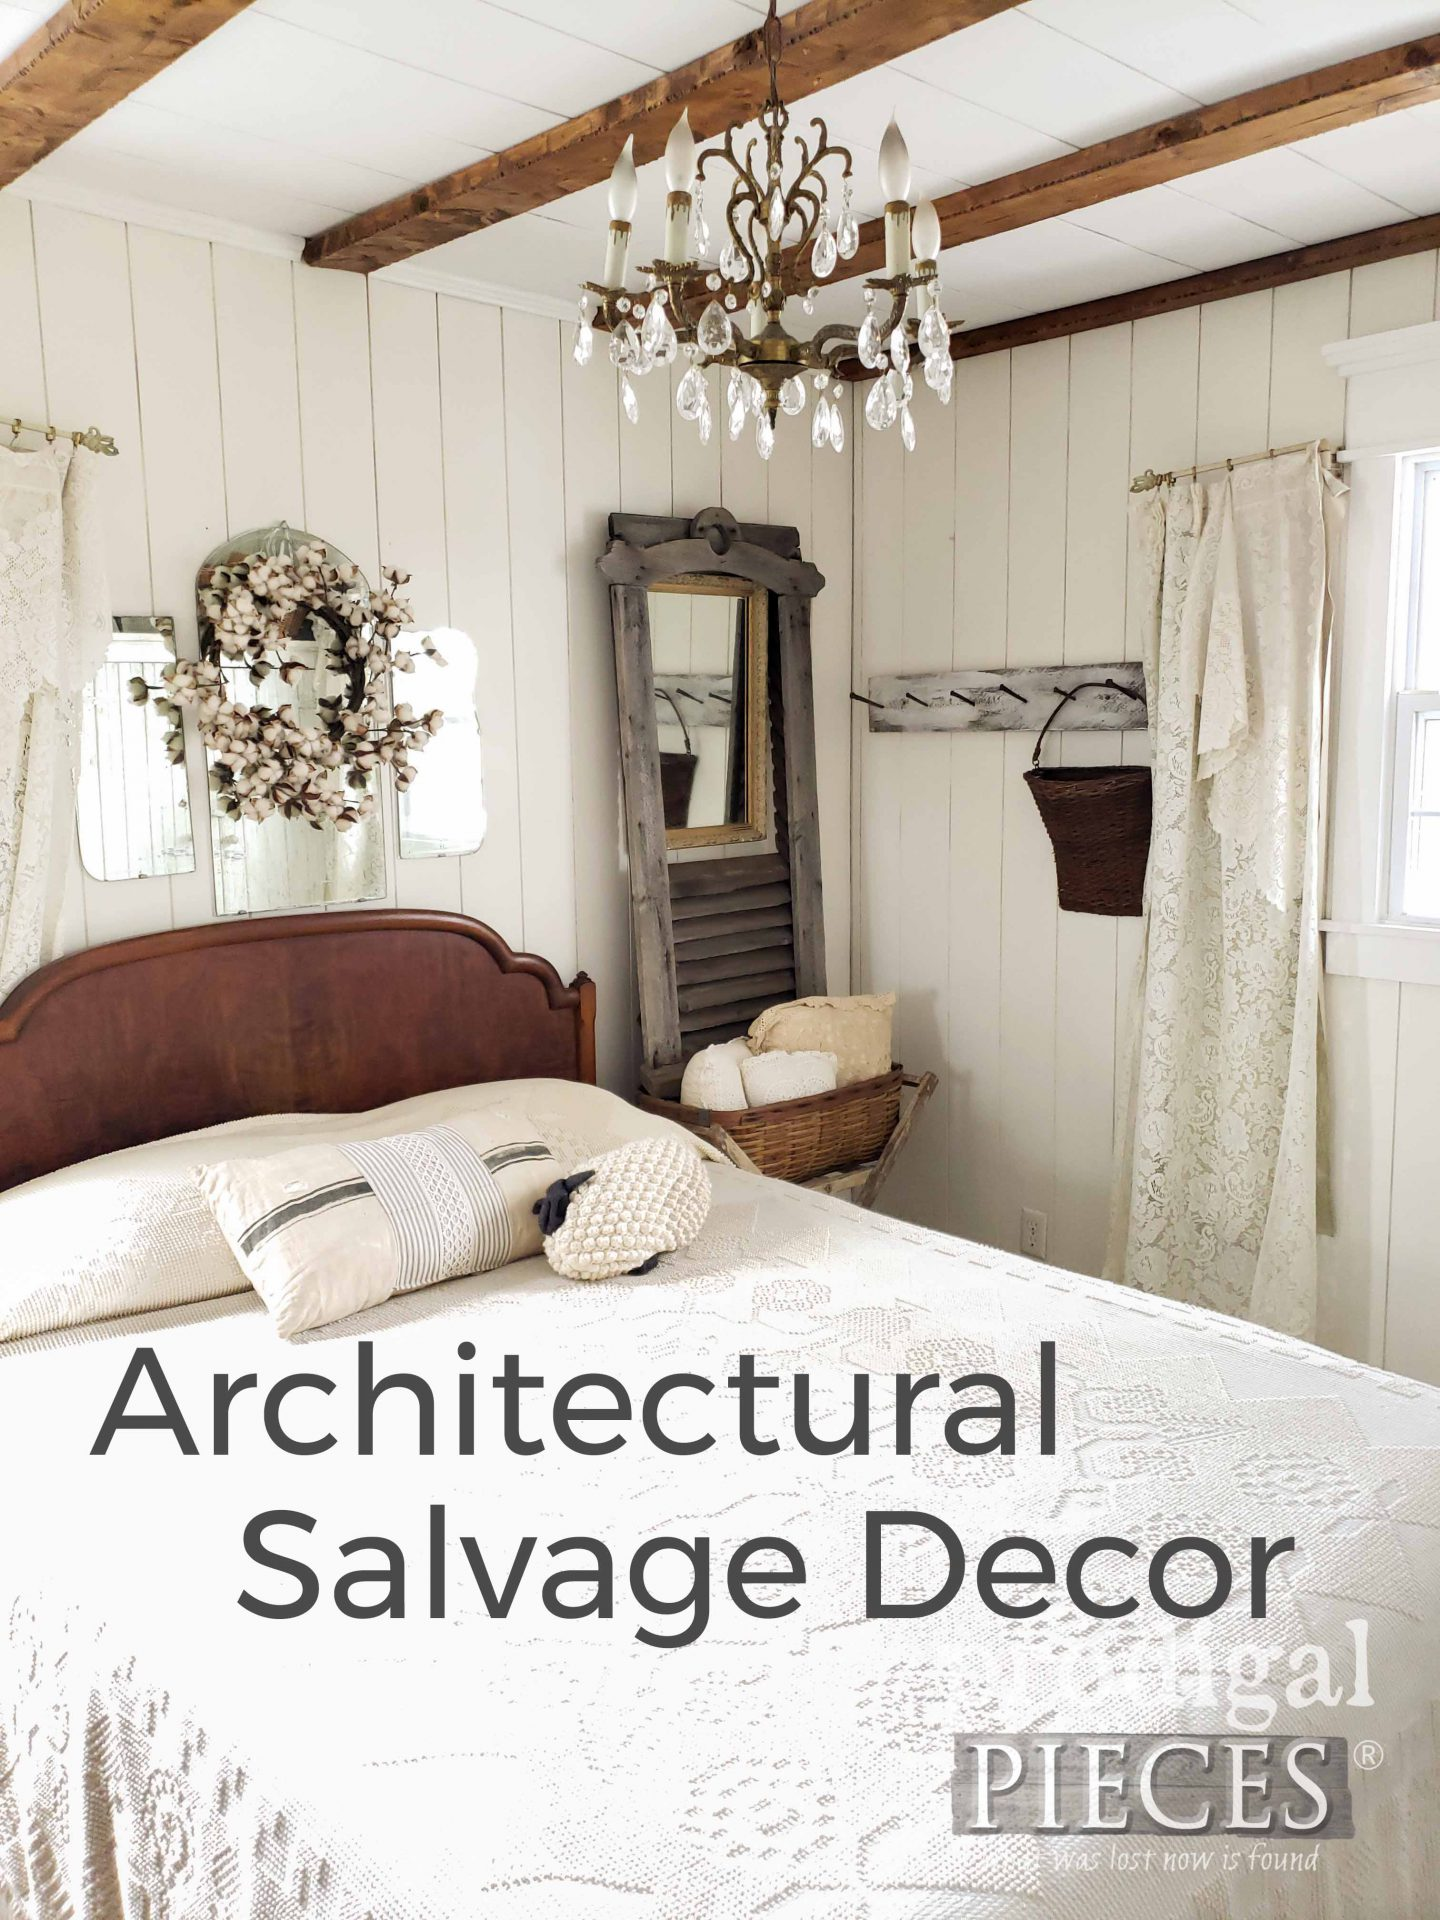 Architectural Salvage Decor in Farmhouse Bedroom by Larissa of Prodigal Pieces | prodigalpieces.com #prodigalpieces #home #homedecor #farmhouse #bedroom